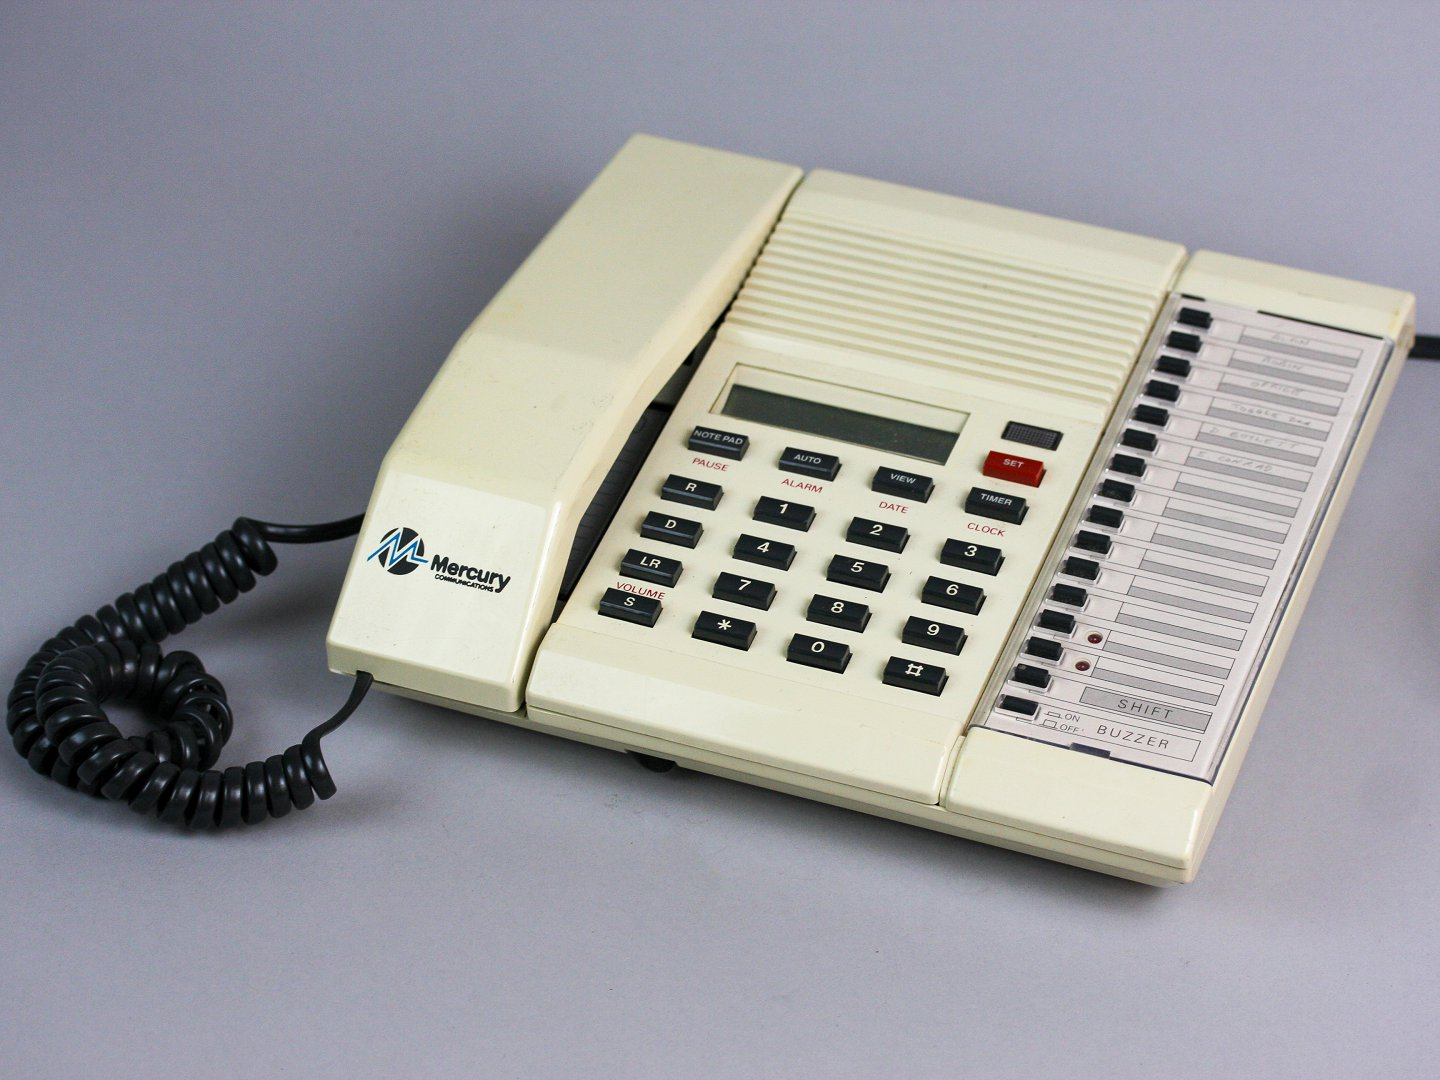 Berkshire Featurephone